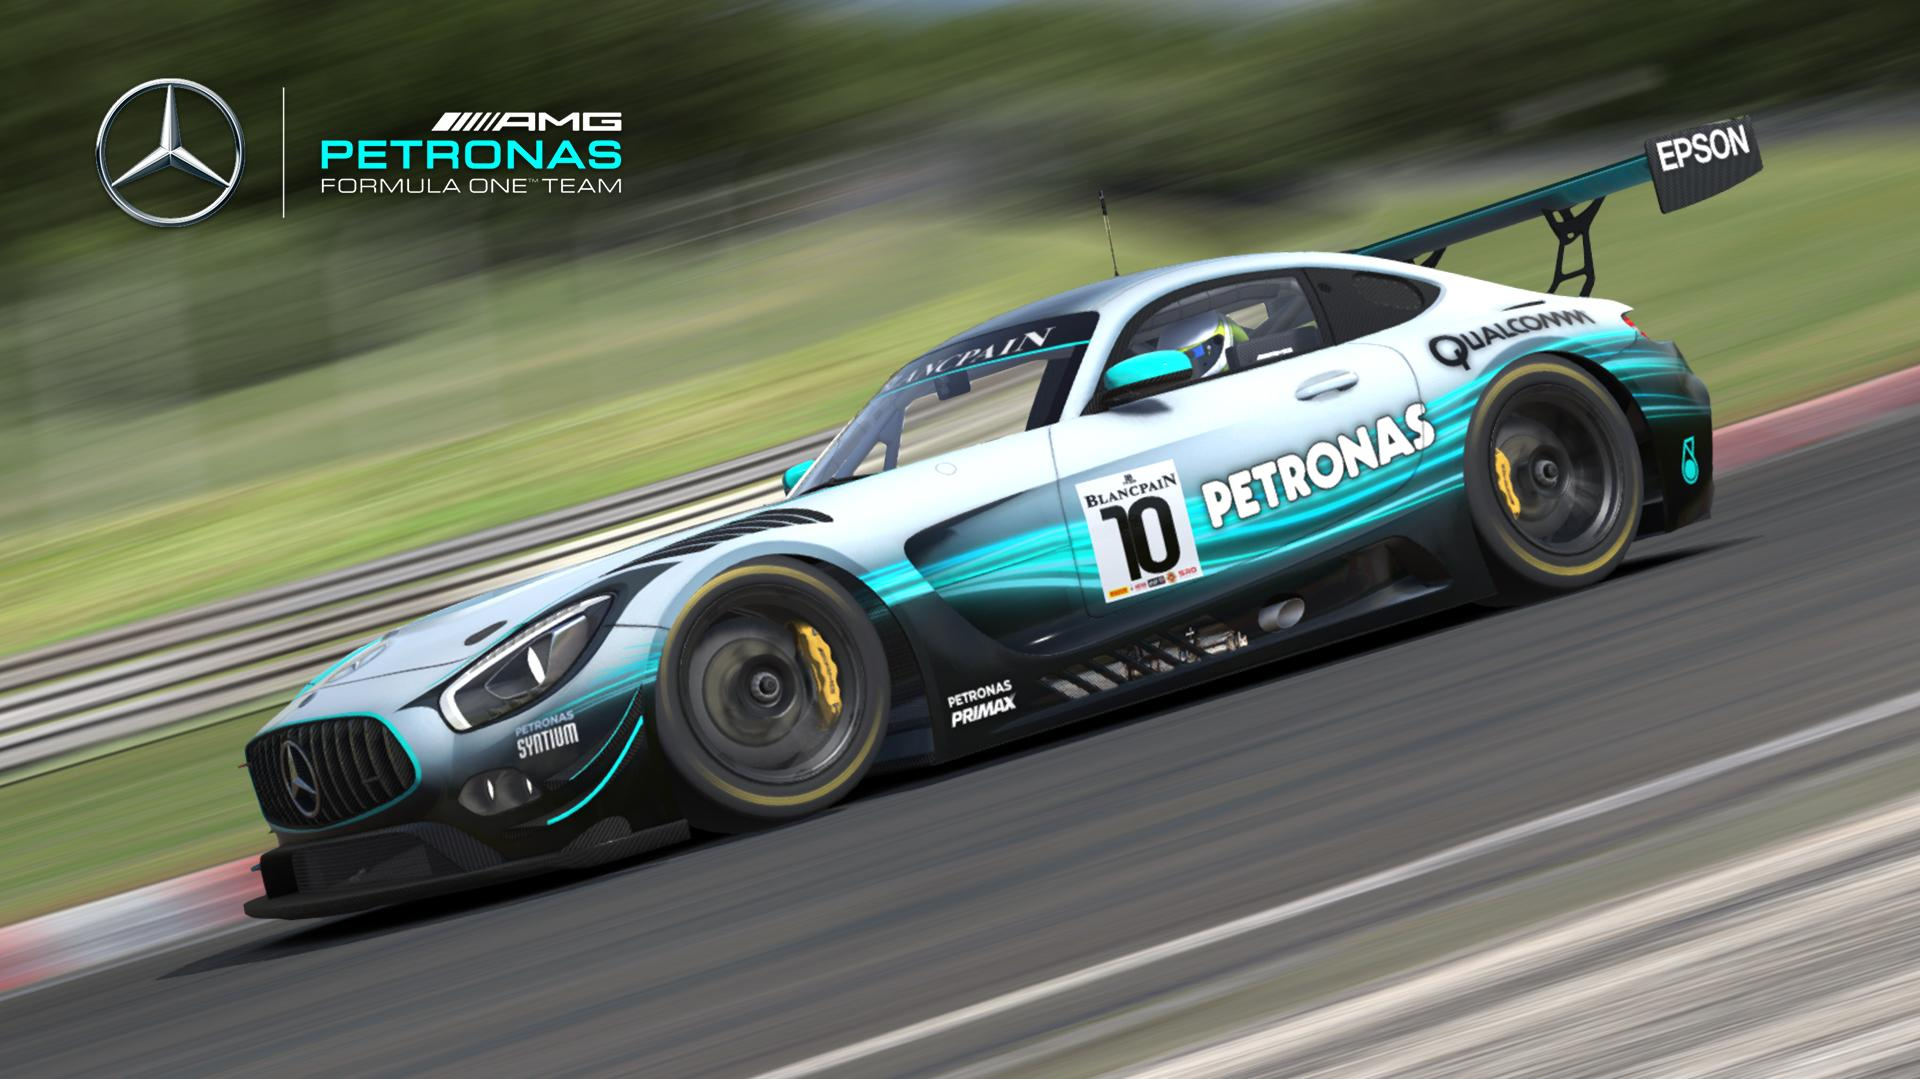 Preview of Mercedes AMG F1 W08 EQ Power+ by Justin S Davis